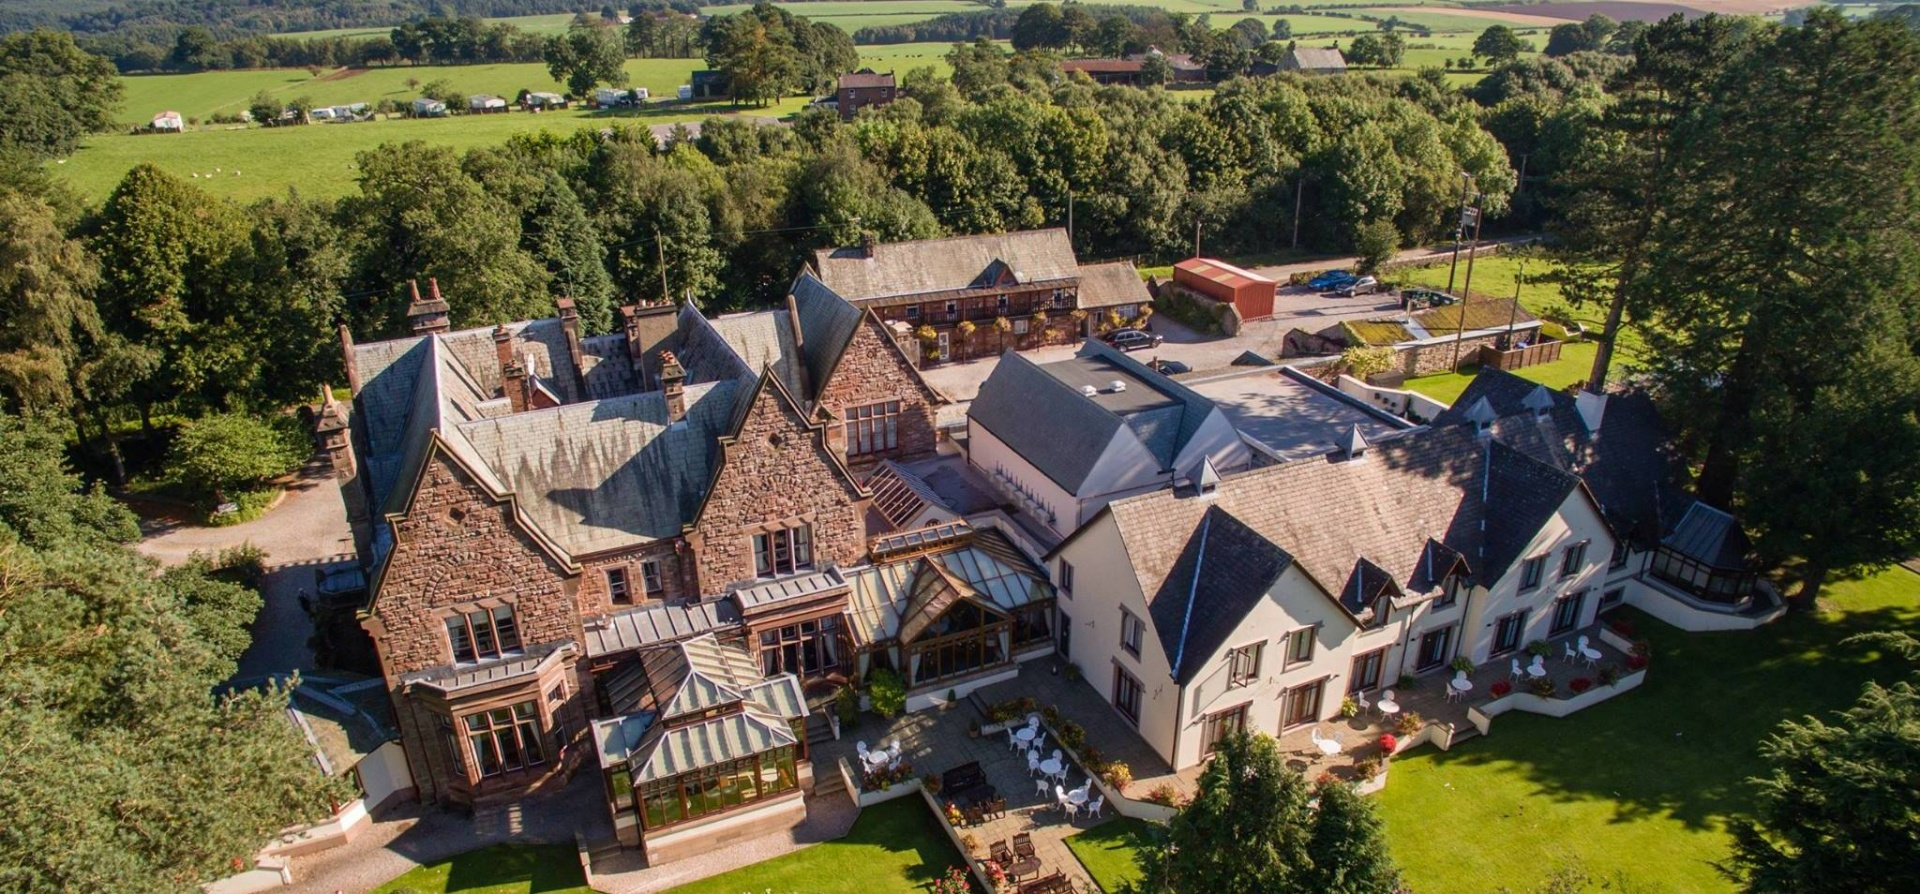 2 Night Serenity Spa Break for Two - Cumbria-15